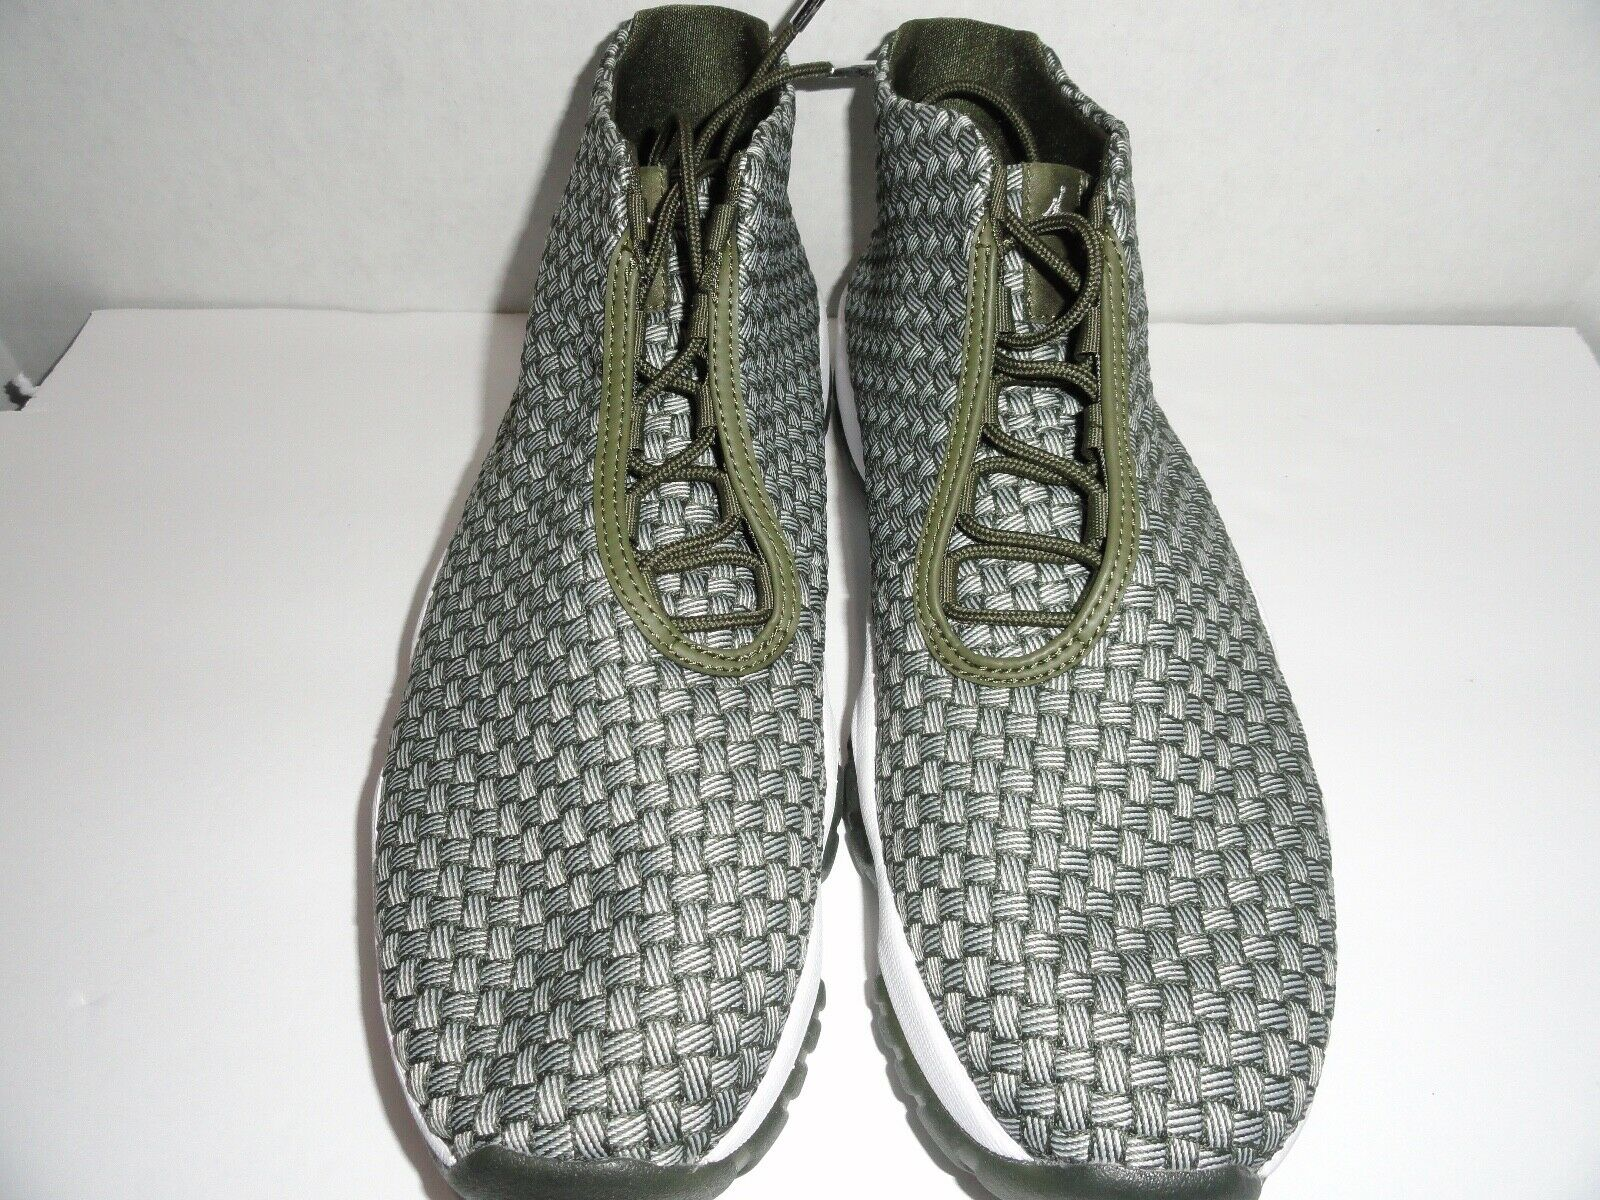 Nike 656503 305 Nike Air Jordan Future Olive Canvas  150 New Basketball shoes